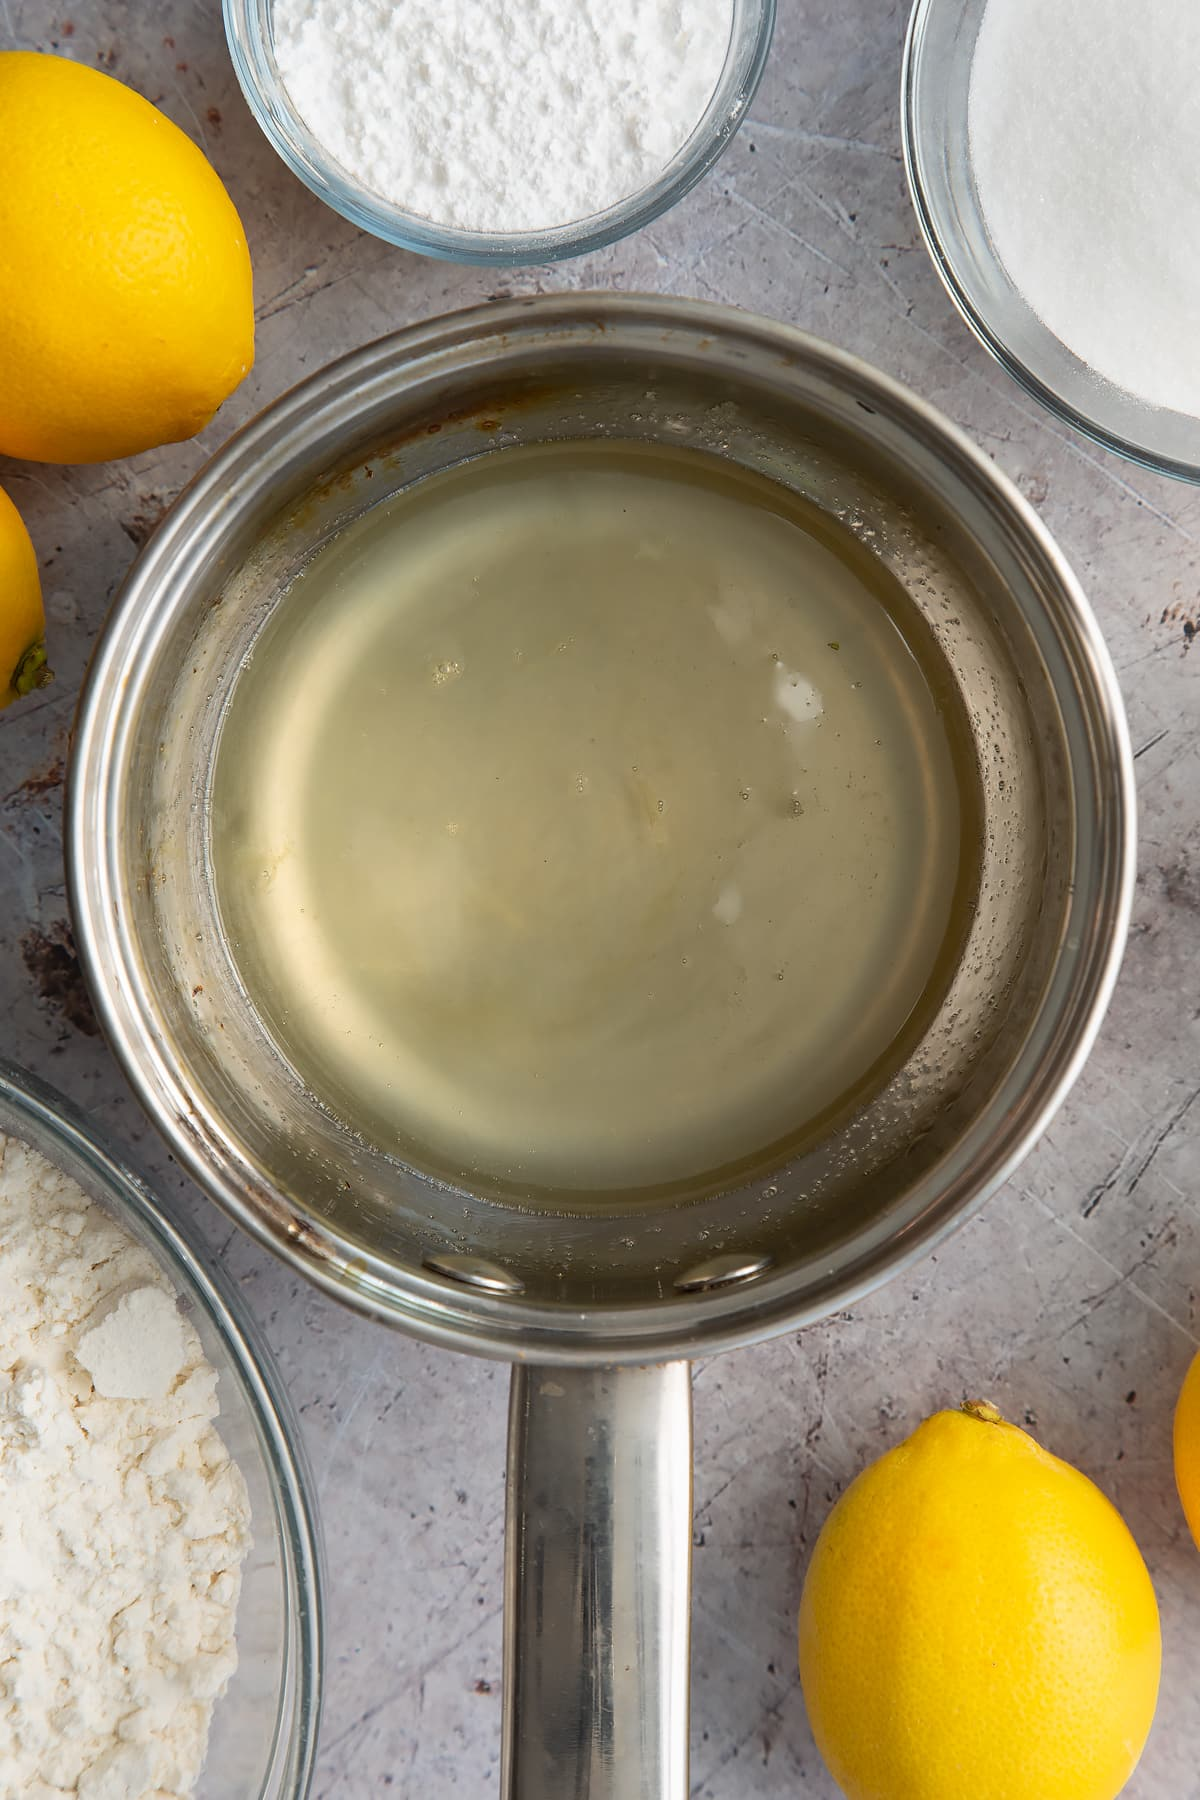 Hot lemon drizzle syrup in a small metal pan. Ingredients to make lemon drizzle cake surround the pan.